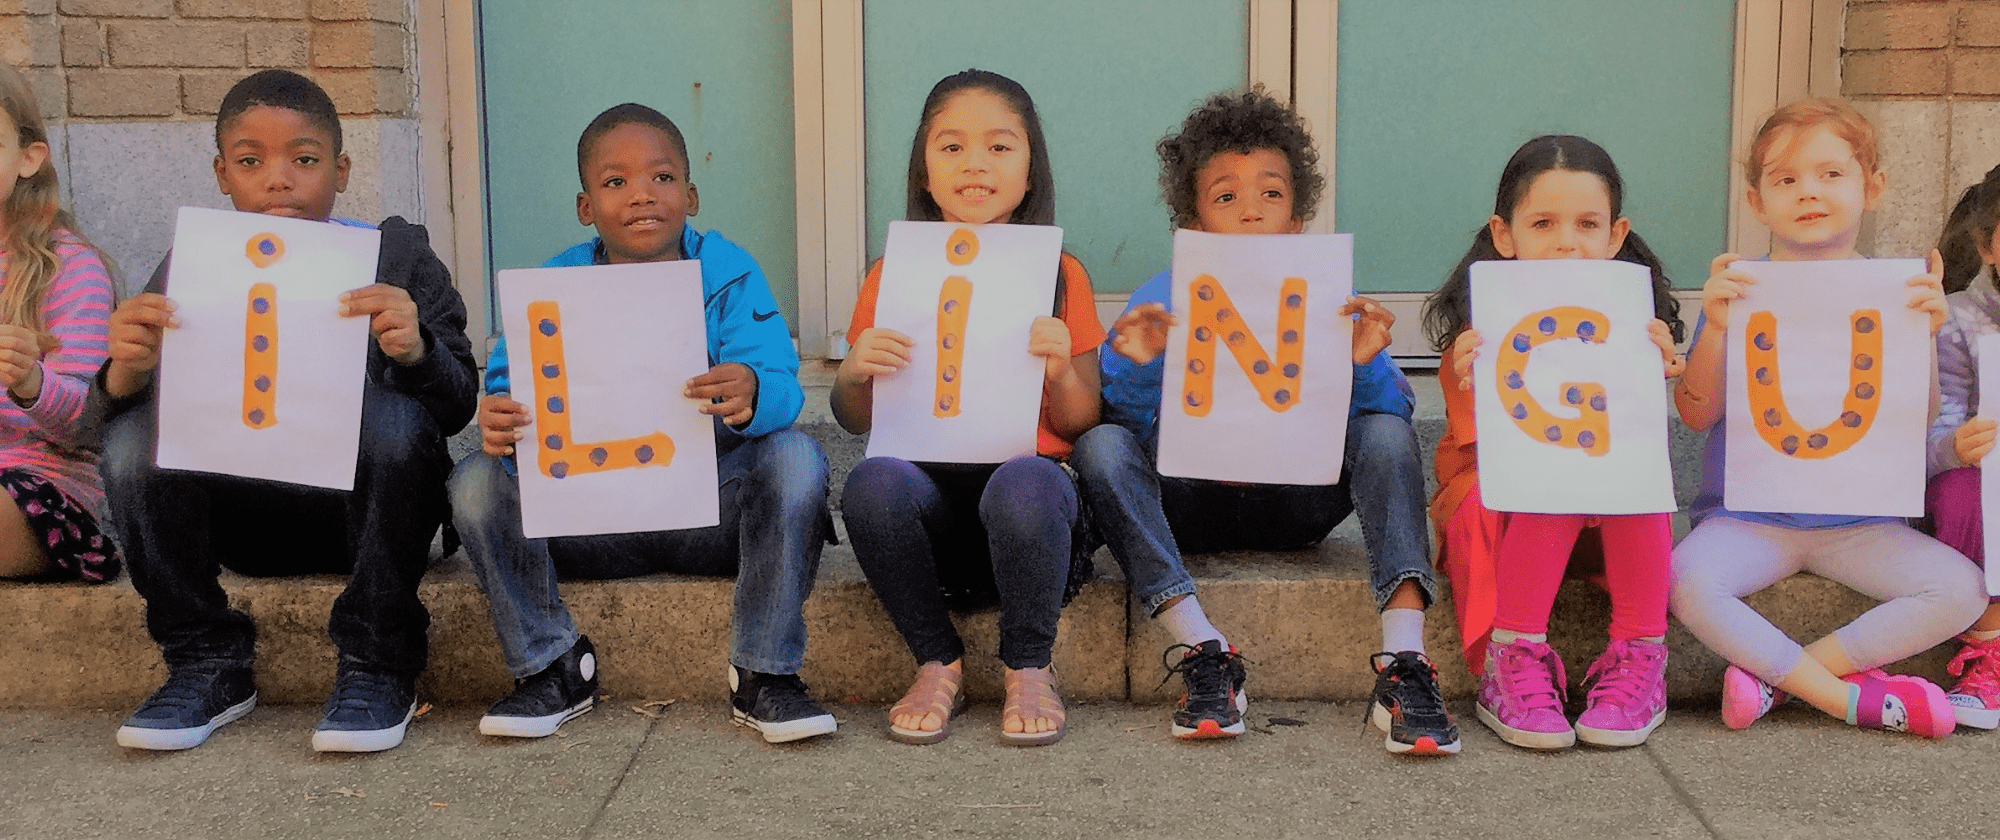 Kids showing letter panels forming the word Bilingual